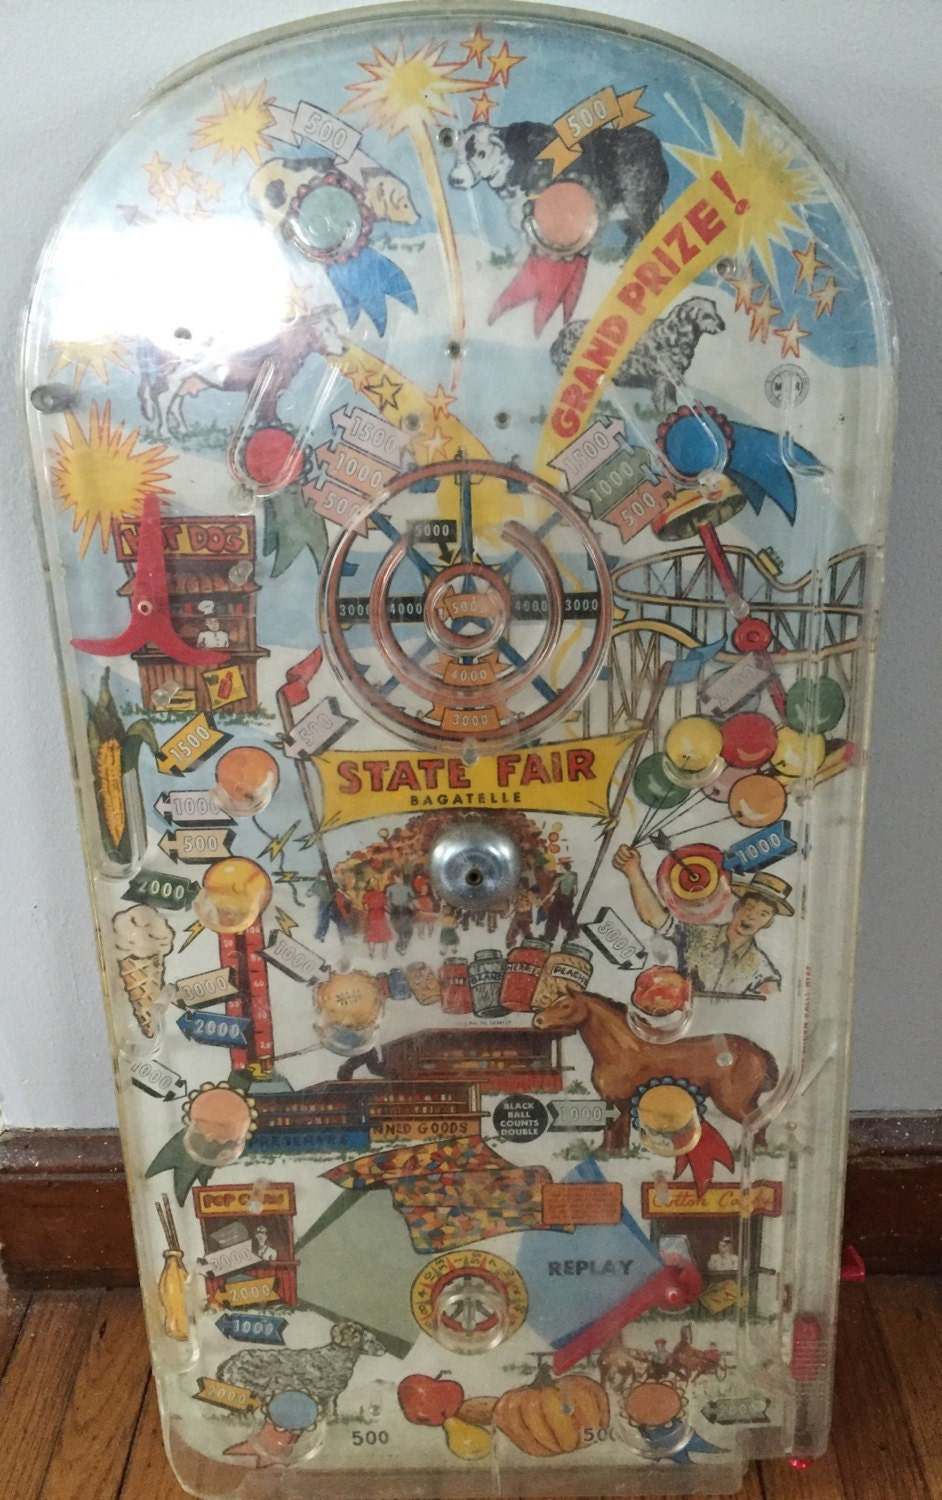 Vintage Lithograph Tabletop State Fair Pinball Machine, 1960's for sale